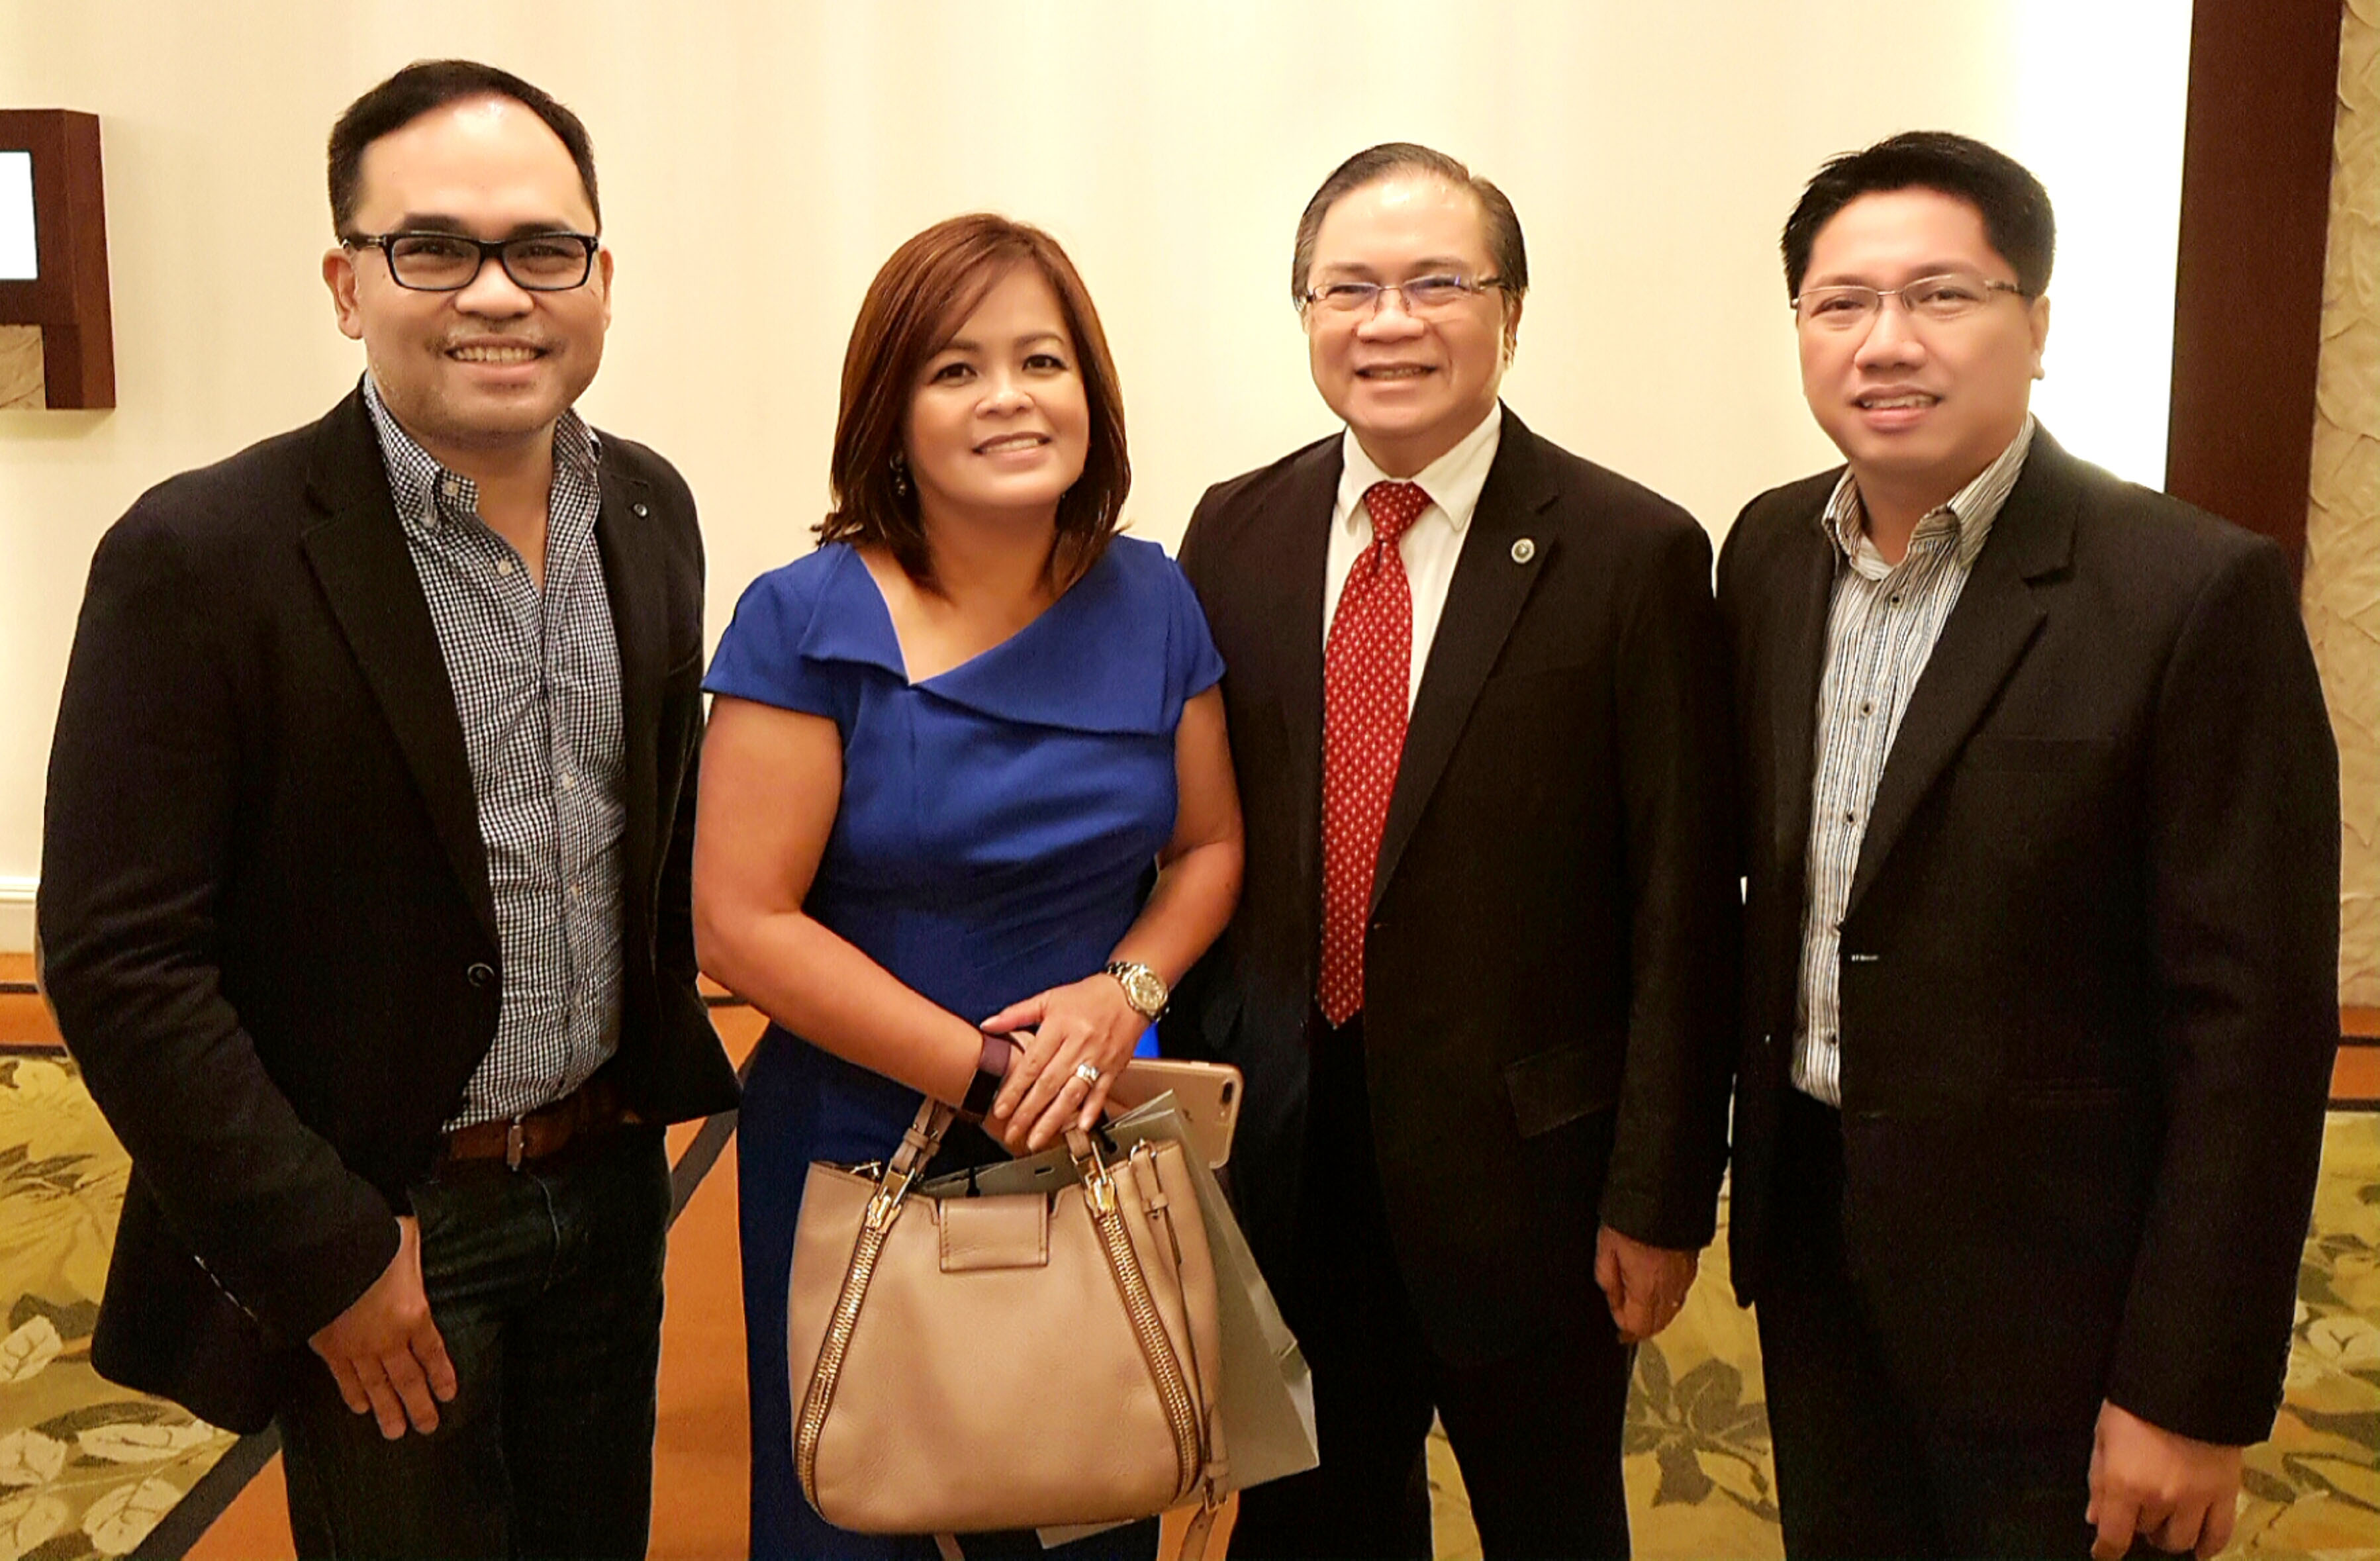 Comptrollers' Circle core team members Aldrin Cerrado and Jei-Jei Gertes flank guest speaker Ging Reyes, head of ABS-CBN News and Current Affairs, and Board of Accountancy deputy commissioner Gerry Sanvictores during the opening of Accountancy Week